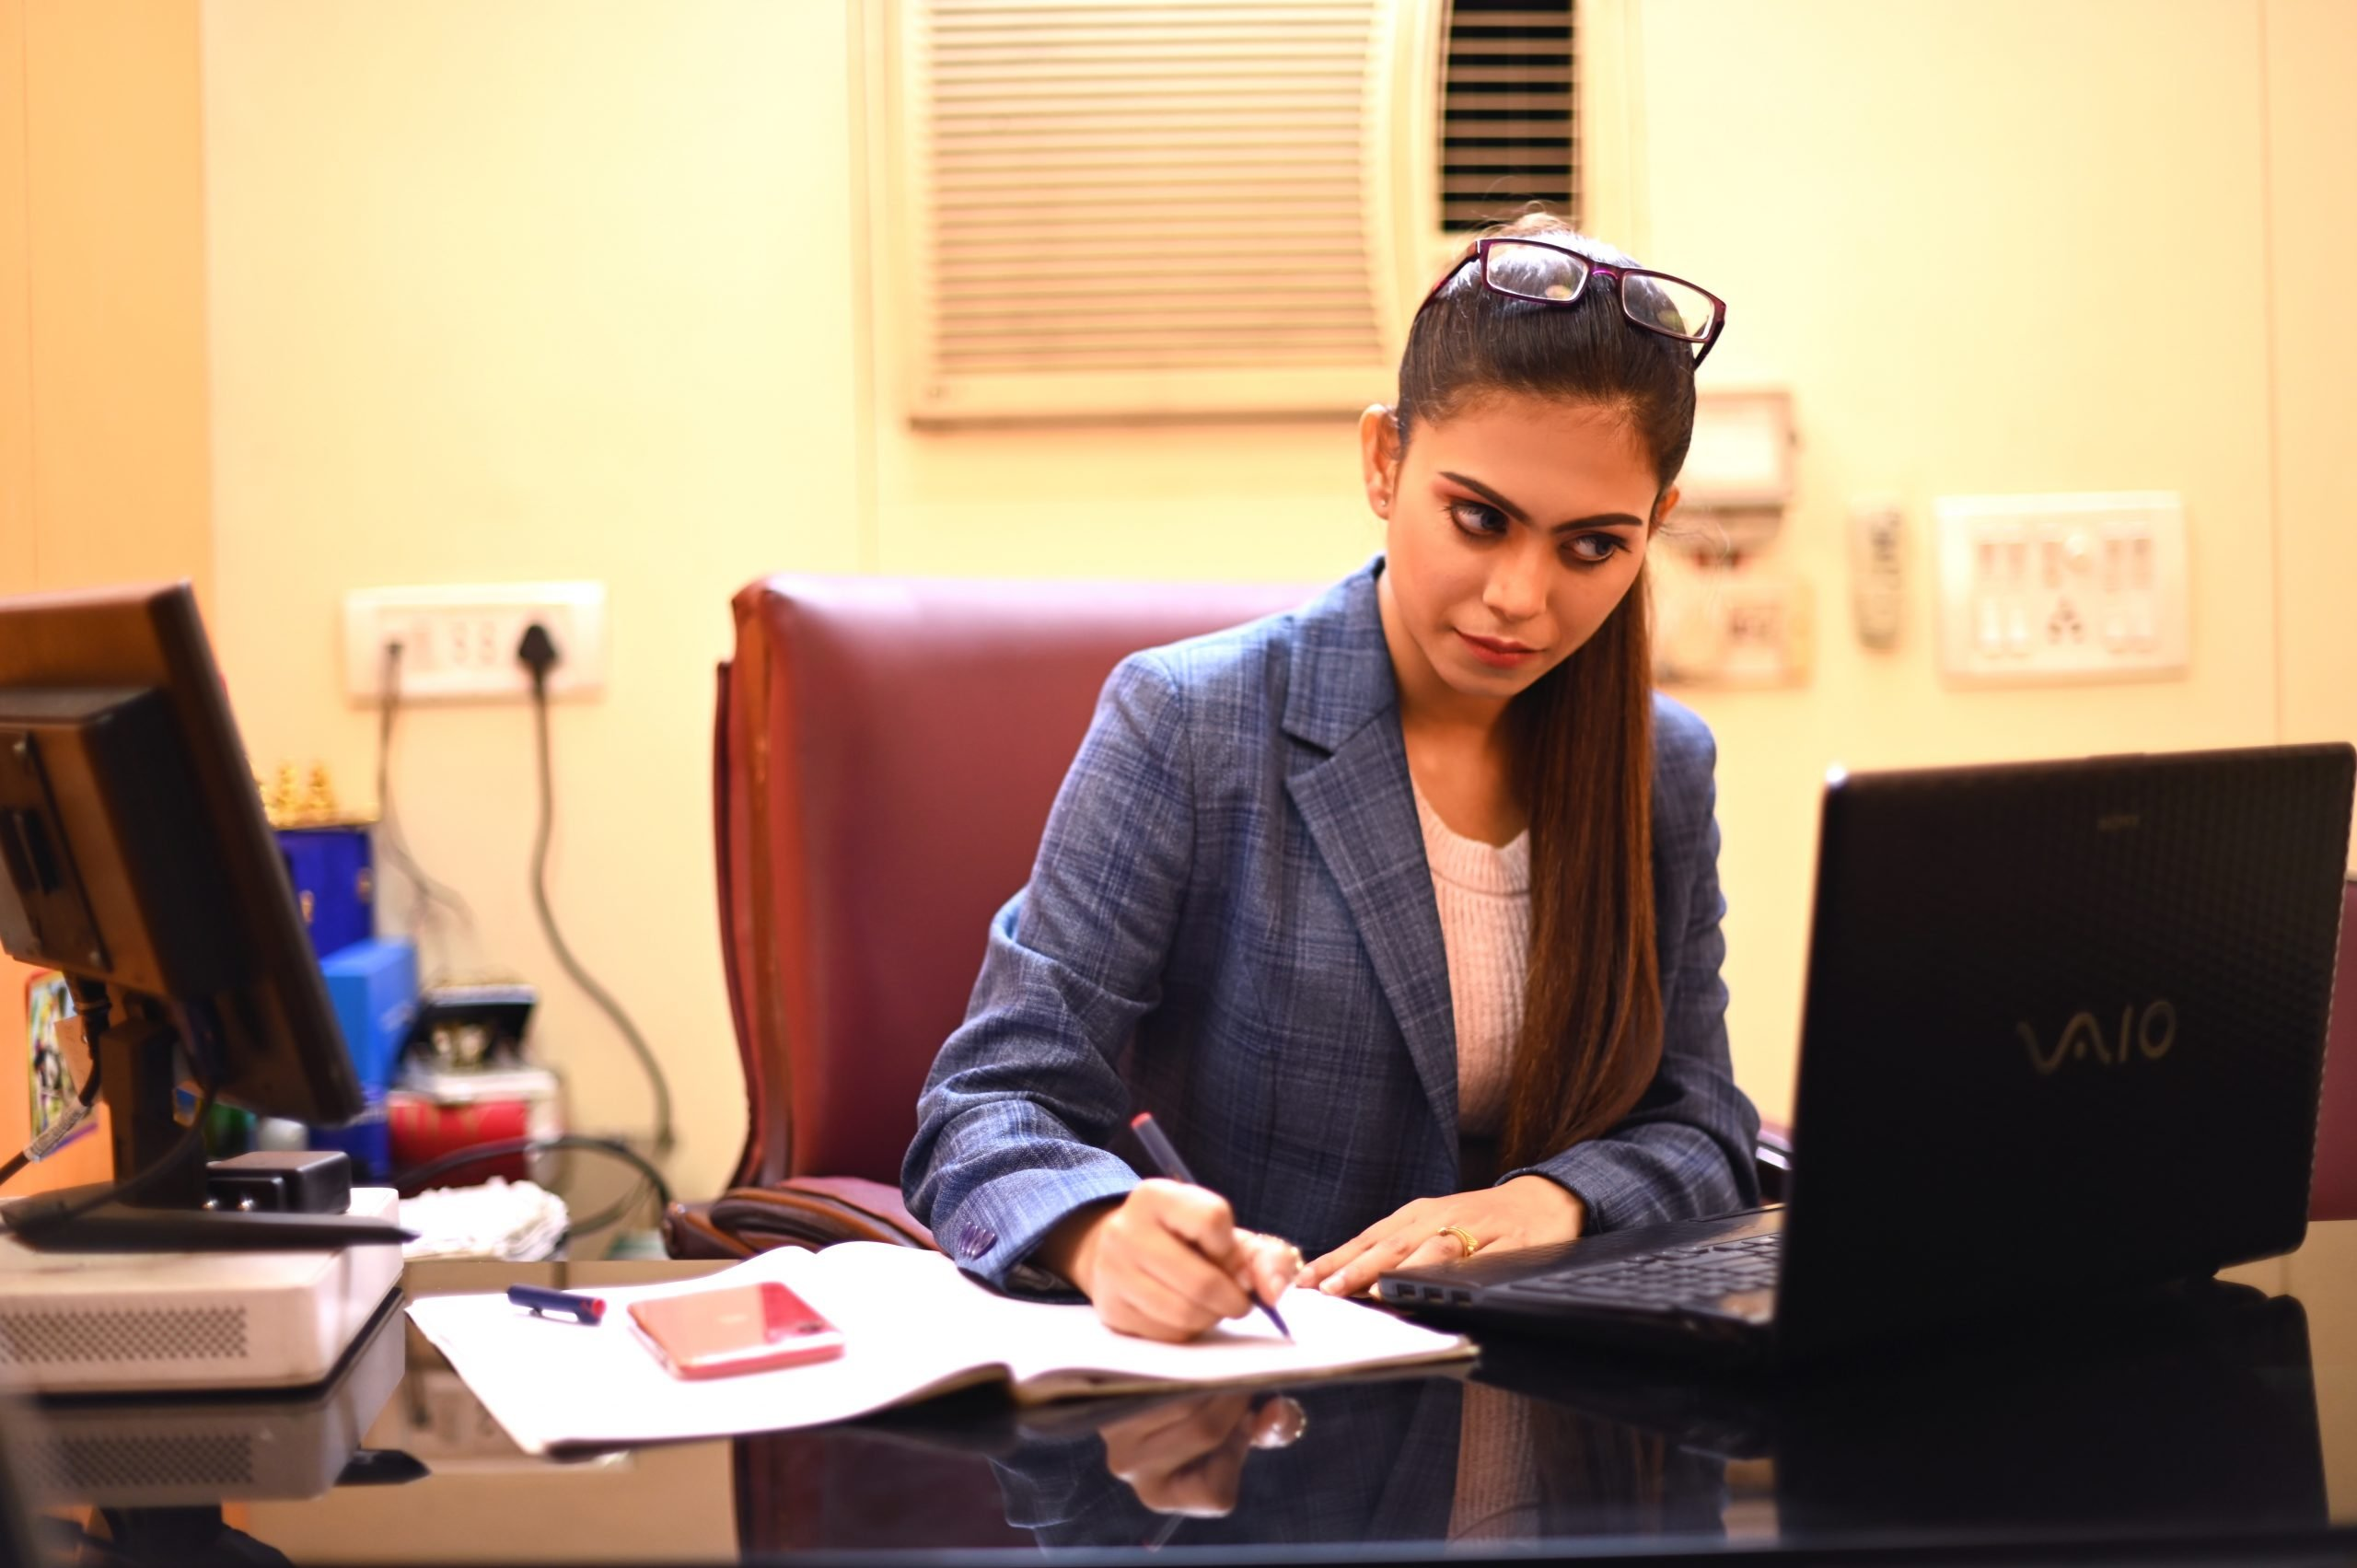 A girl working in office